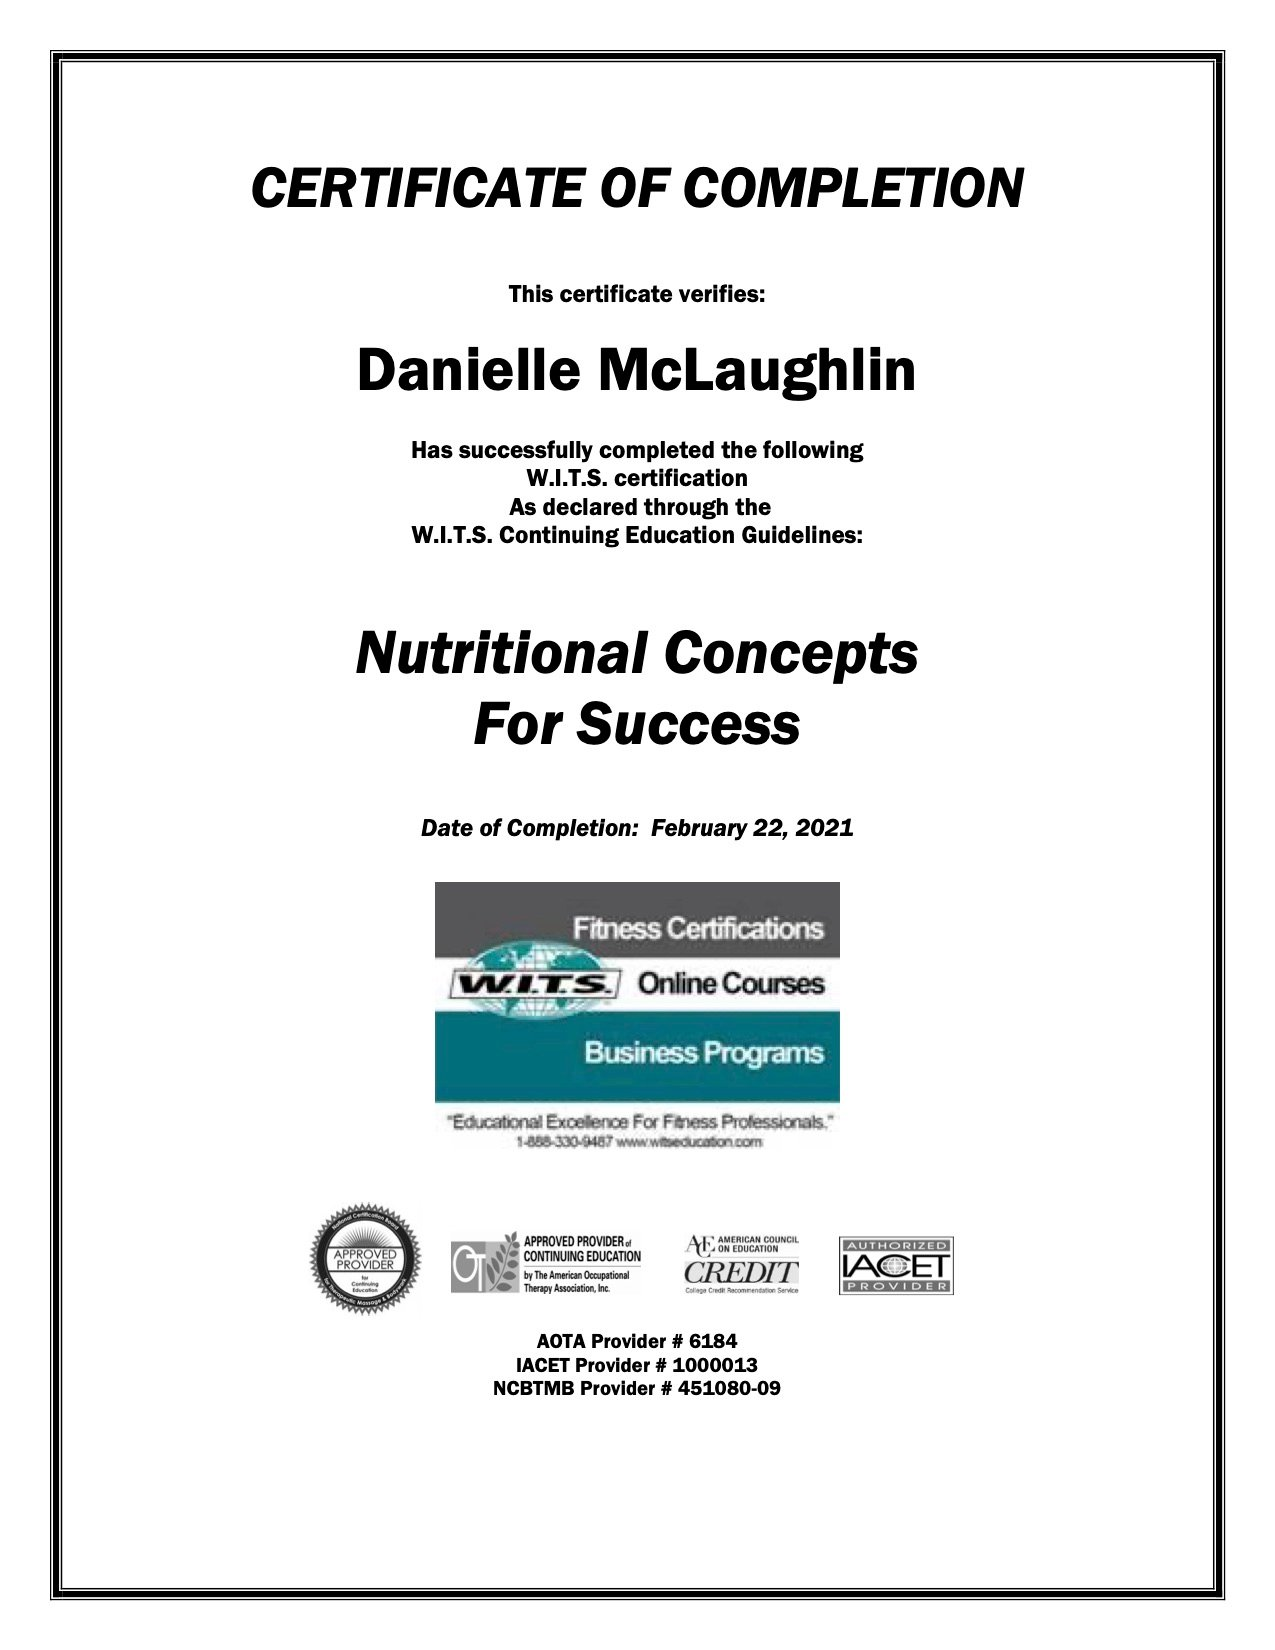 Certificate of completion in Nutritional Concepts For Success conferred by W.I.T.S.